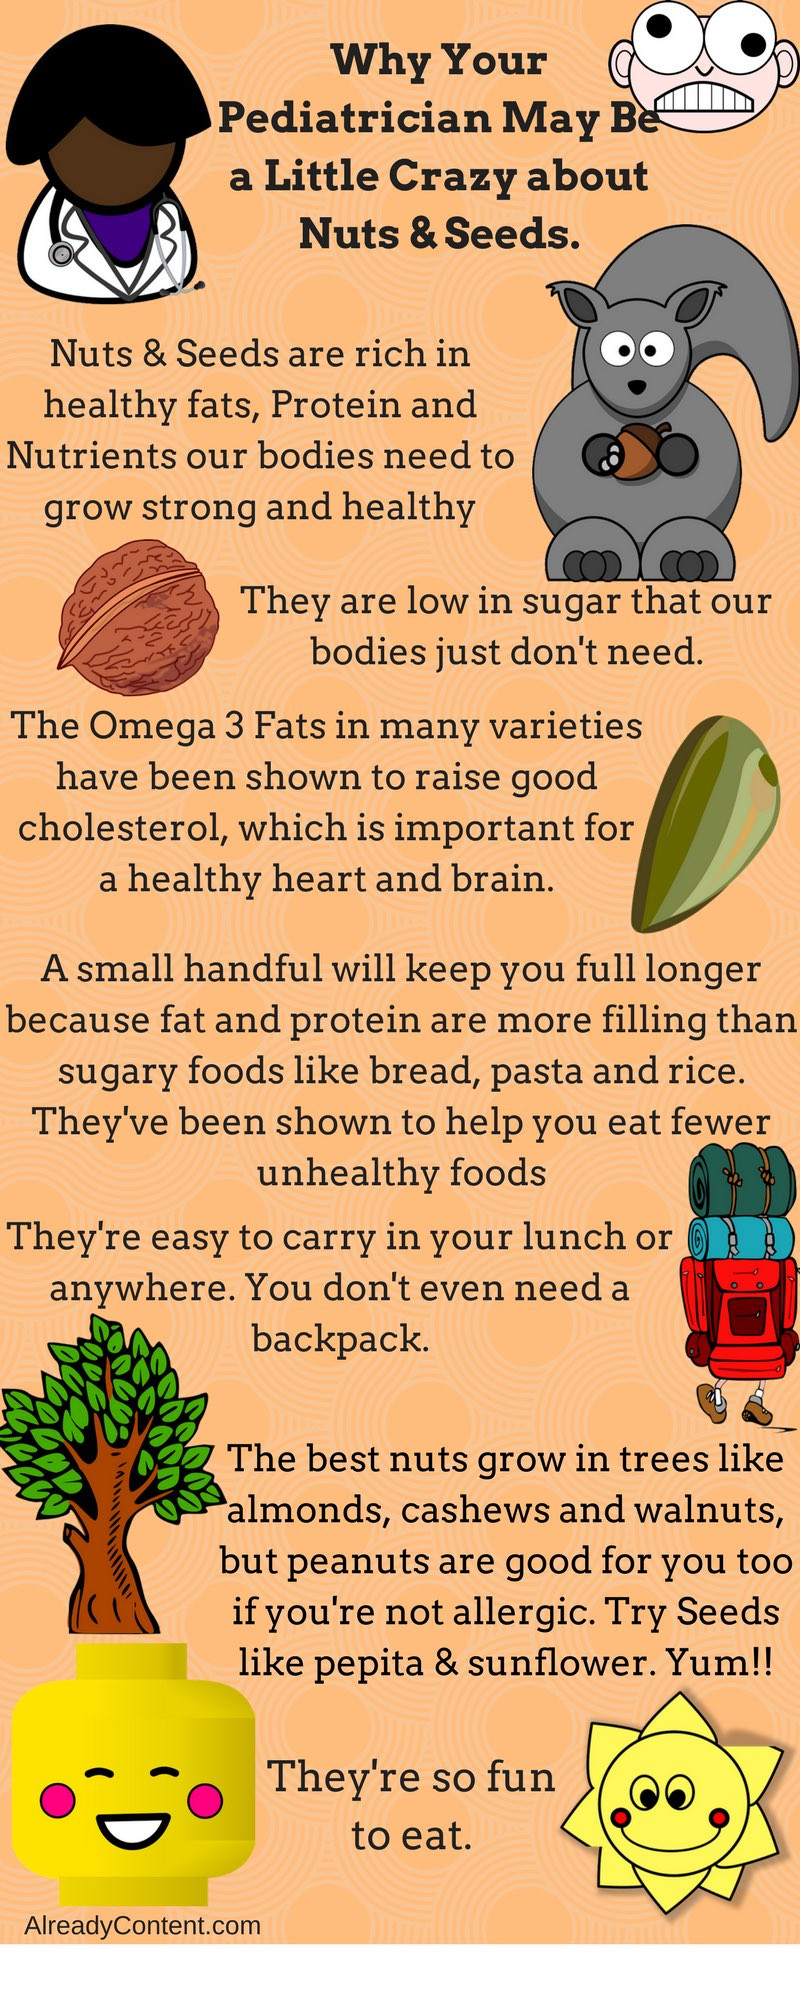 Visual: The health benefits of nuts and seeds